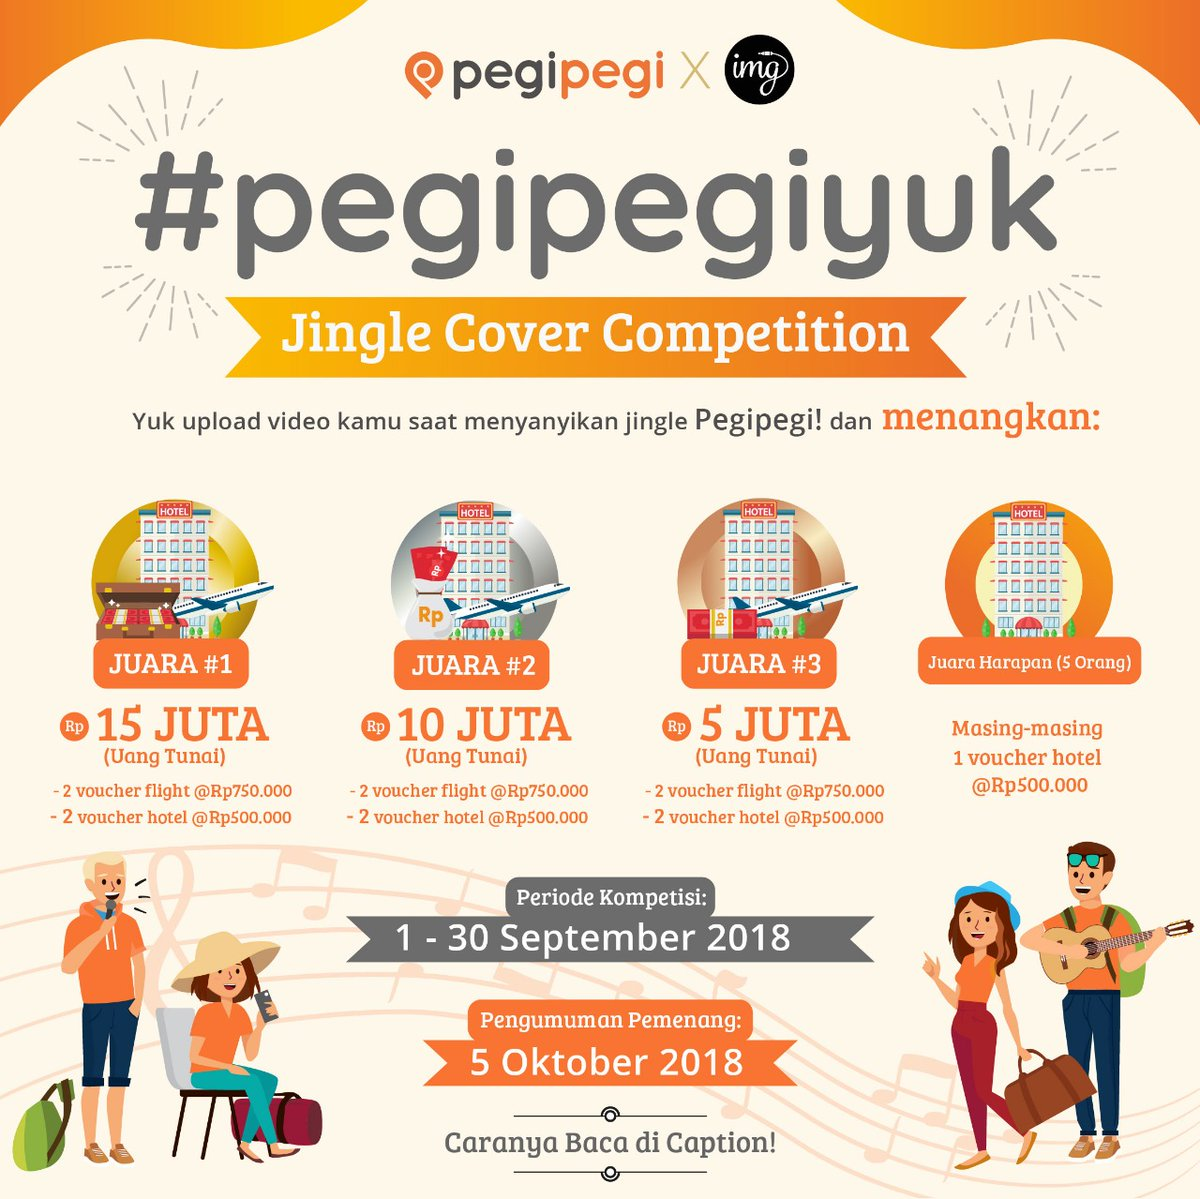 PegiPegi - Promo Kontes Jingle Cover Competition (s.d 30 Sept 2018)